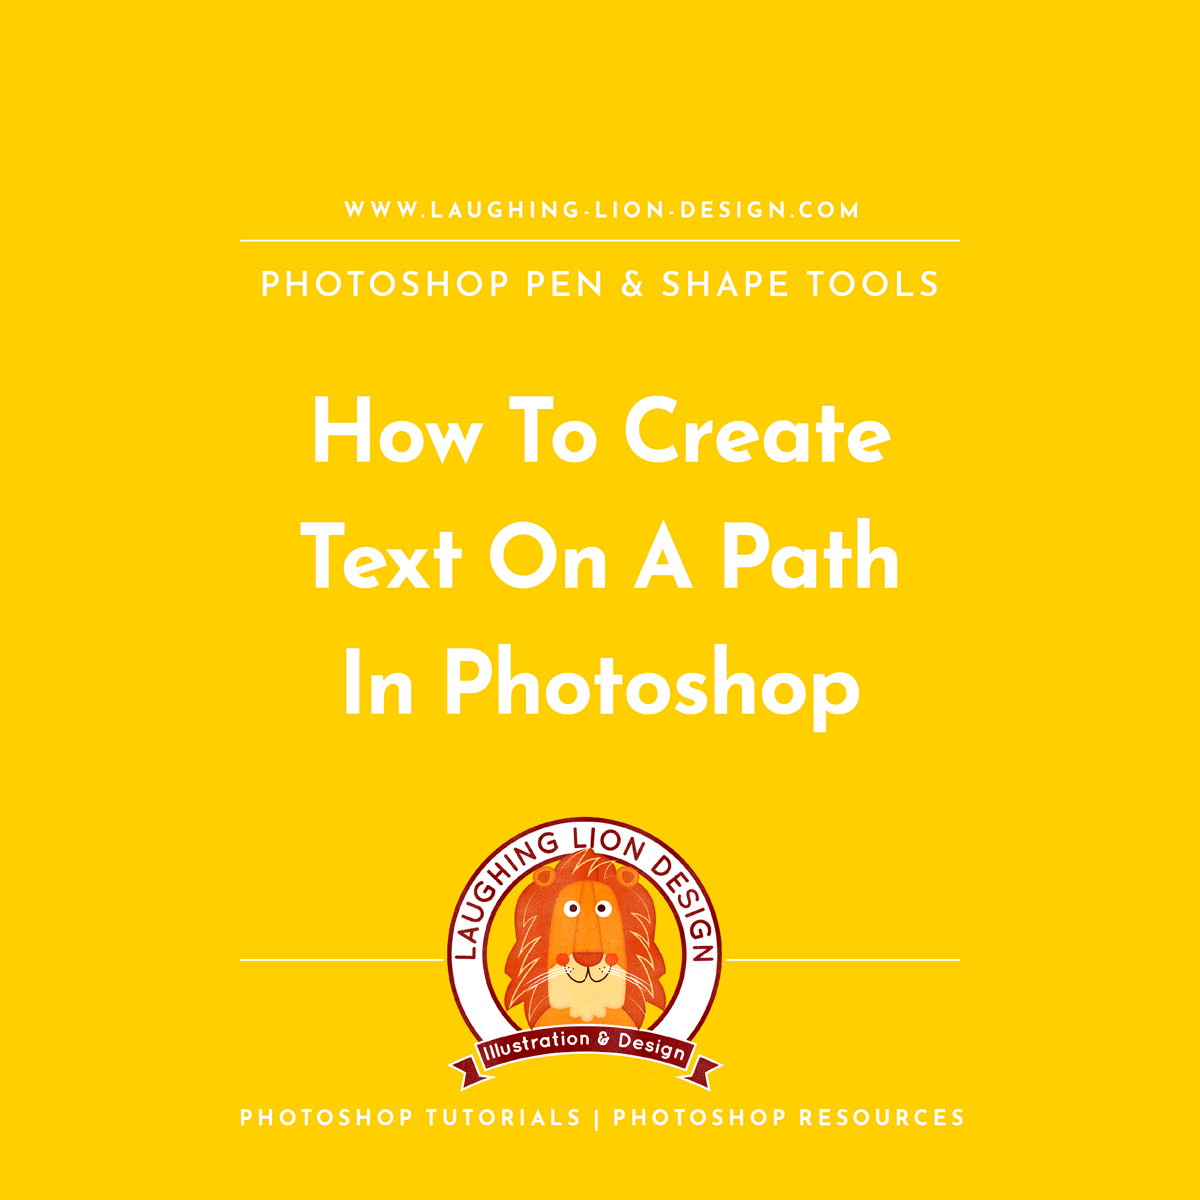 How-To-Draw-Text-On-A-Path-In-Photoshop---Laughing-Lion-Design